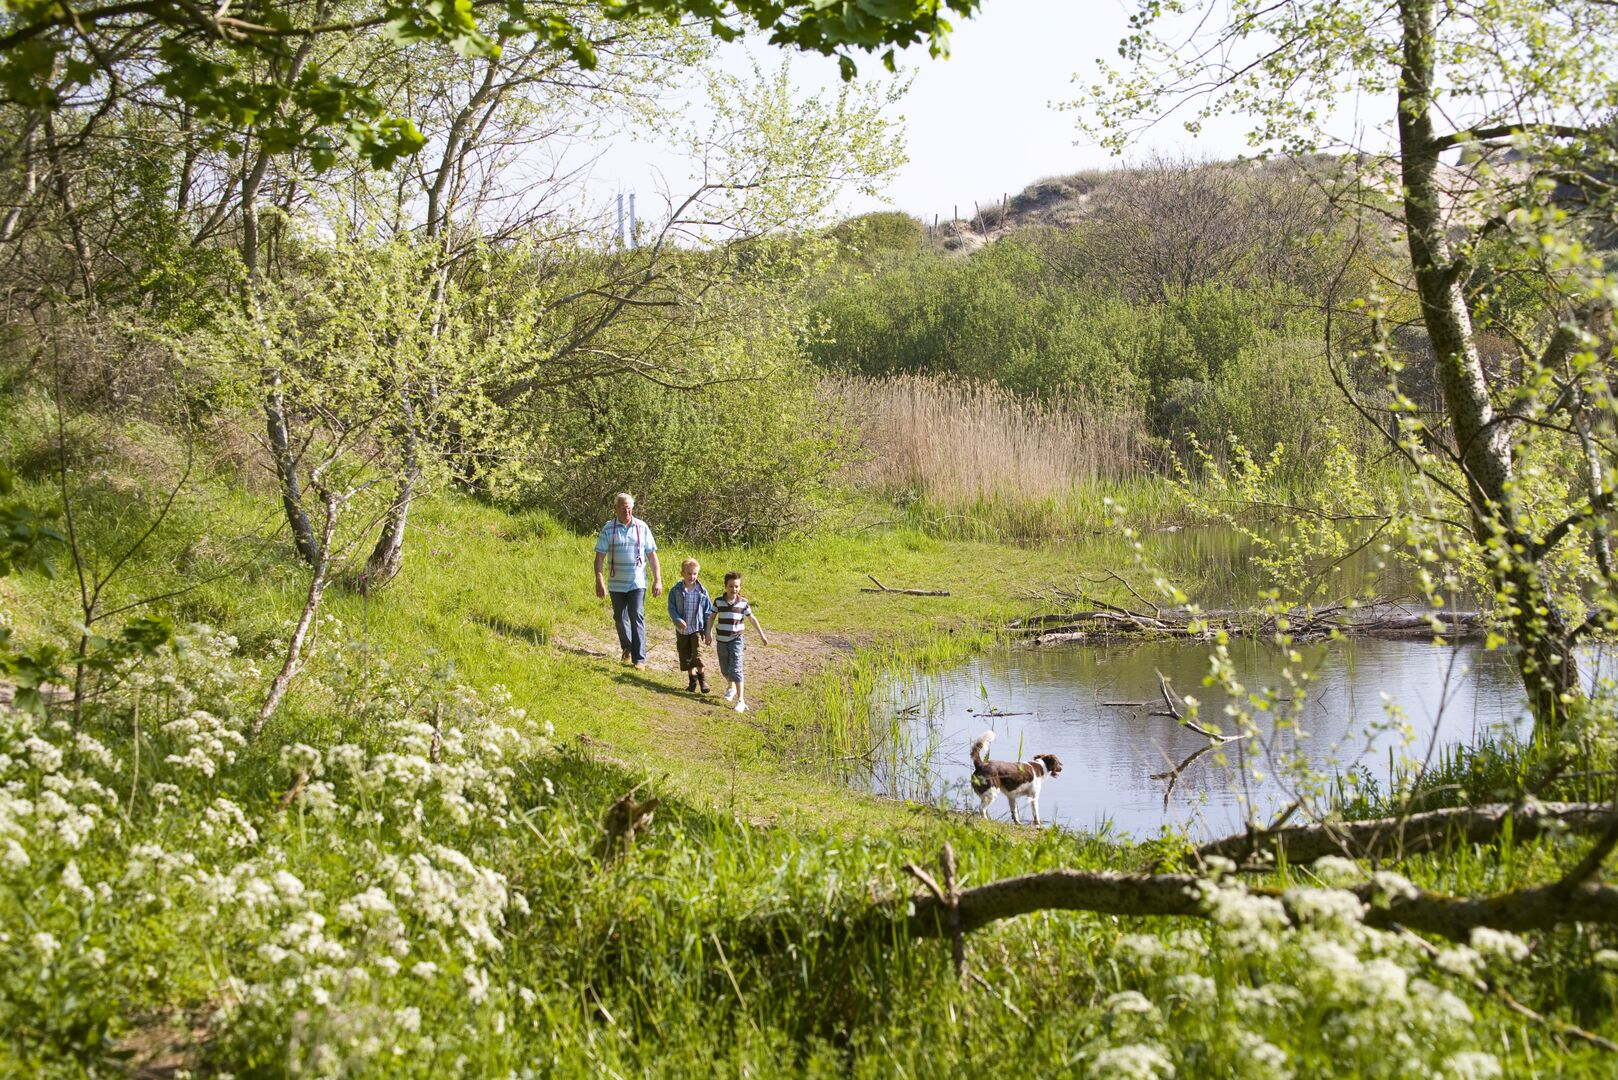 Man, two kids and a dog walking along a pond in a woodland area